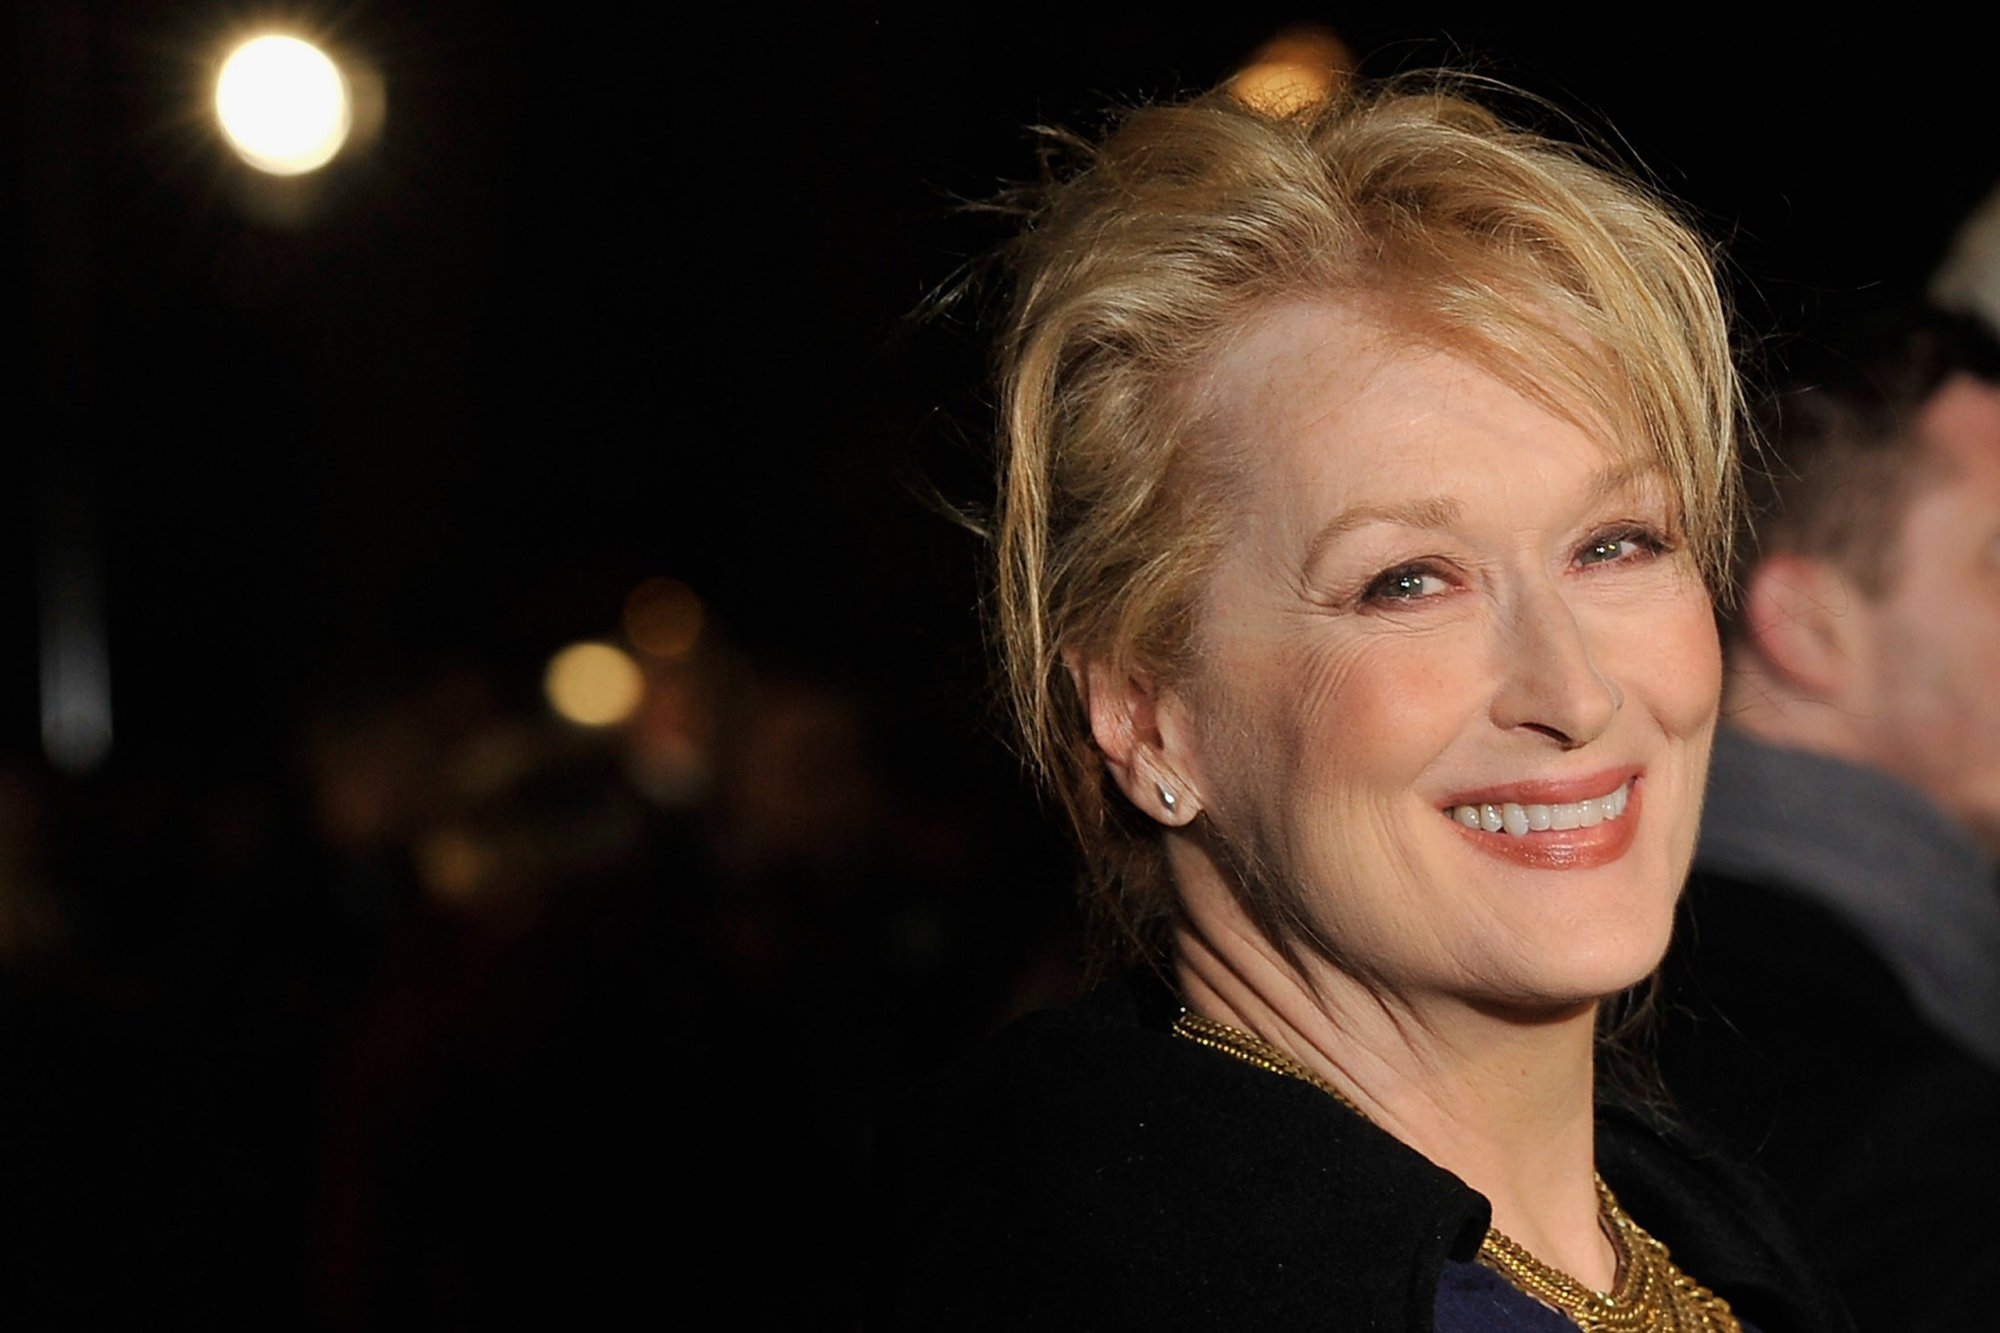 Meryl Streep Wallpapers